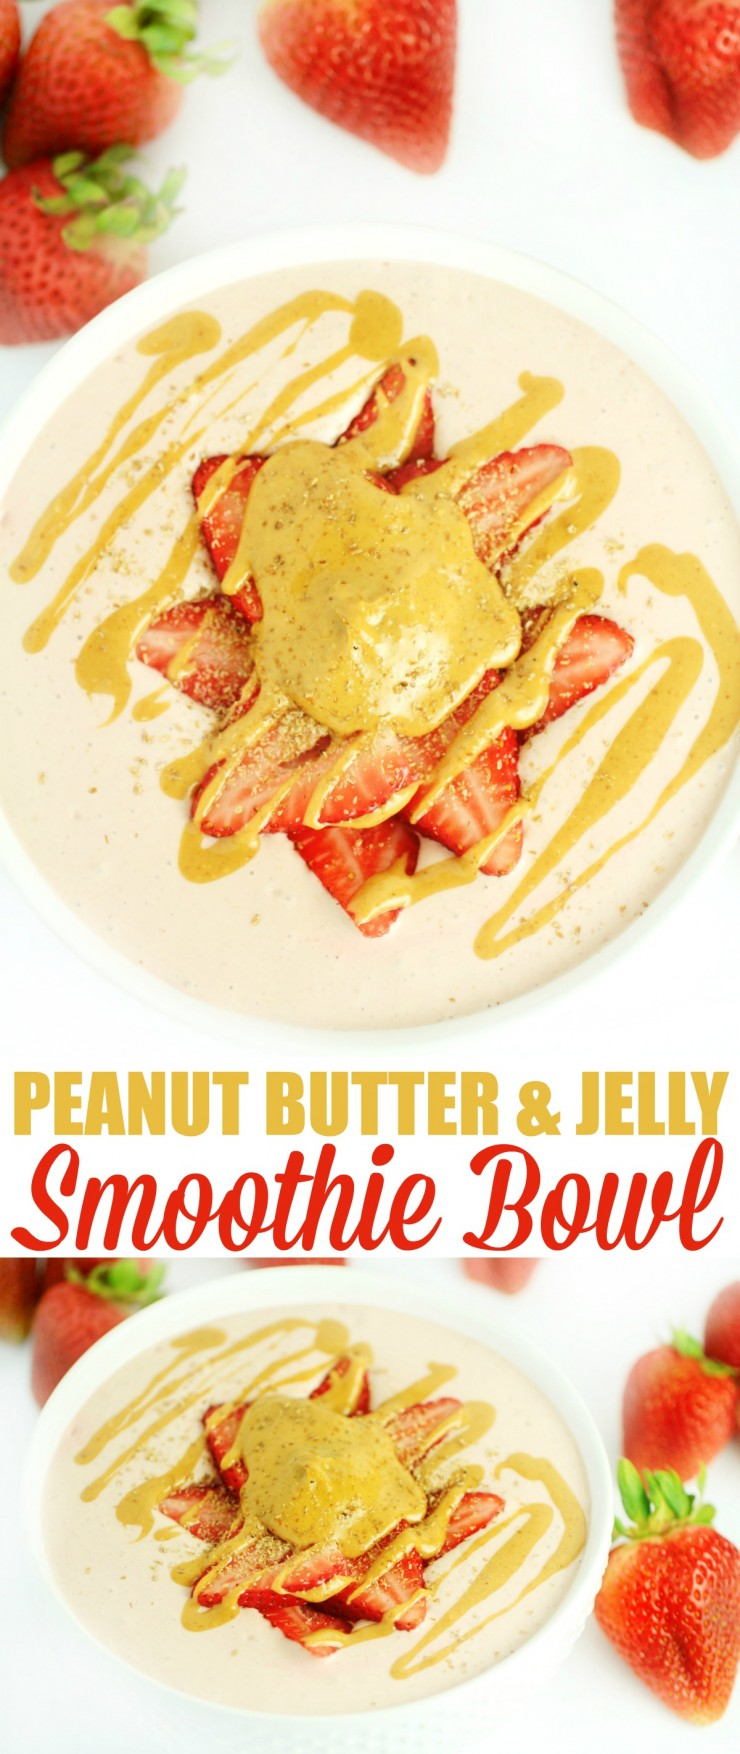 This Peanut Butter and Jelly Smoothie Bowl recipe is a healthy breakfast and a fun twist on a peanut butter and jelly sandwich.